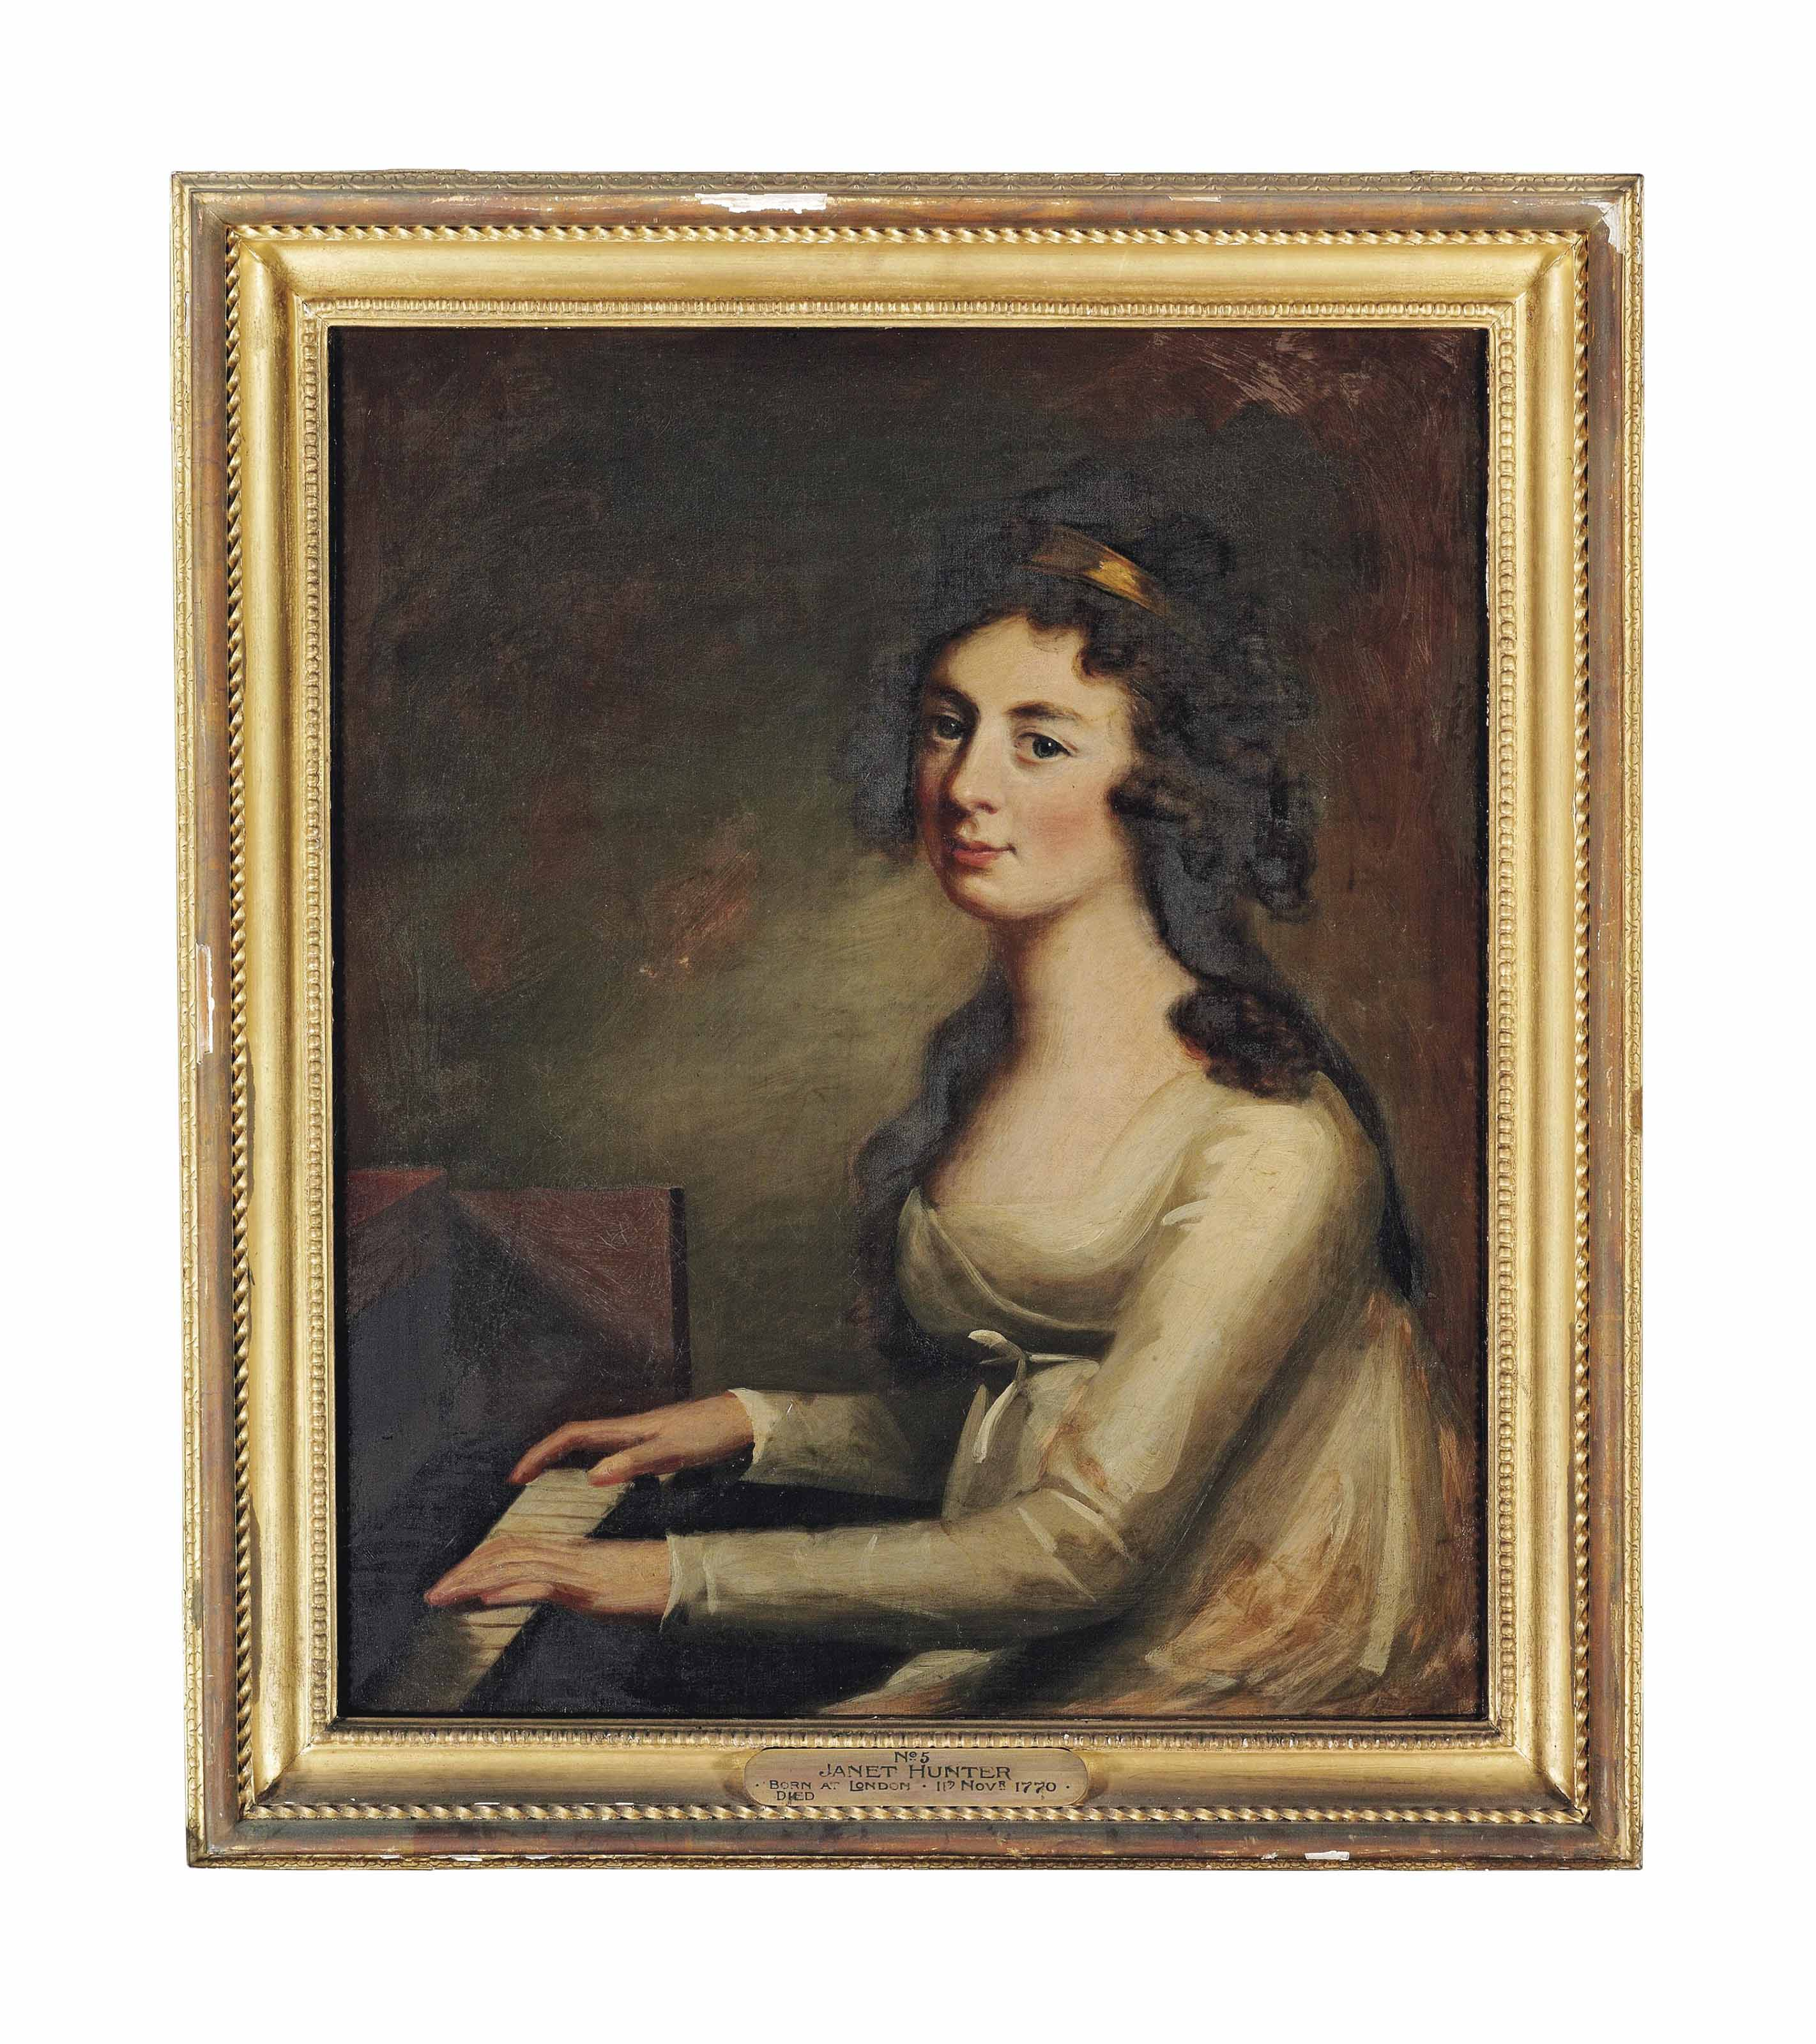 Portrait of Janet Hunter, half-length, in a white dress, seated at a piano